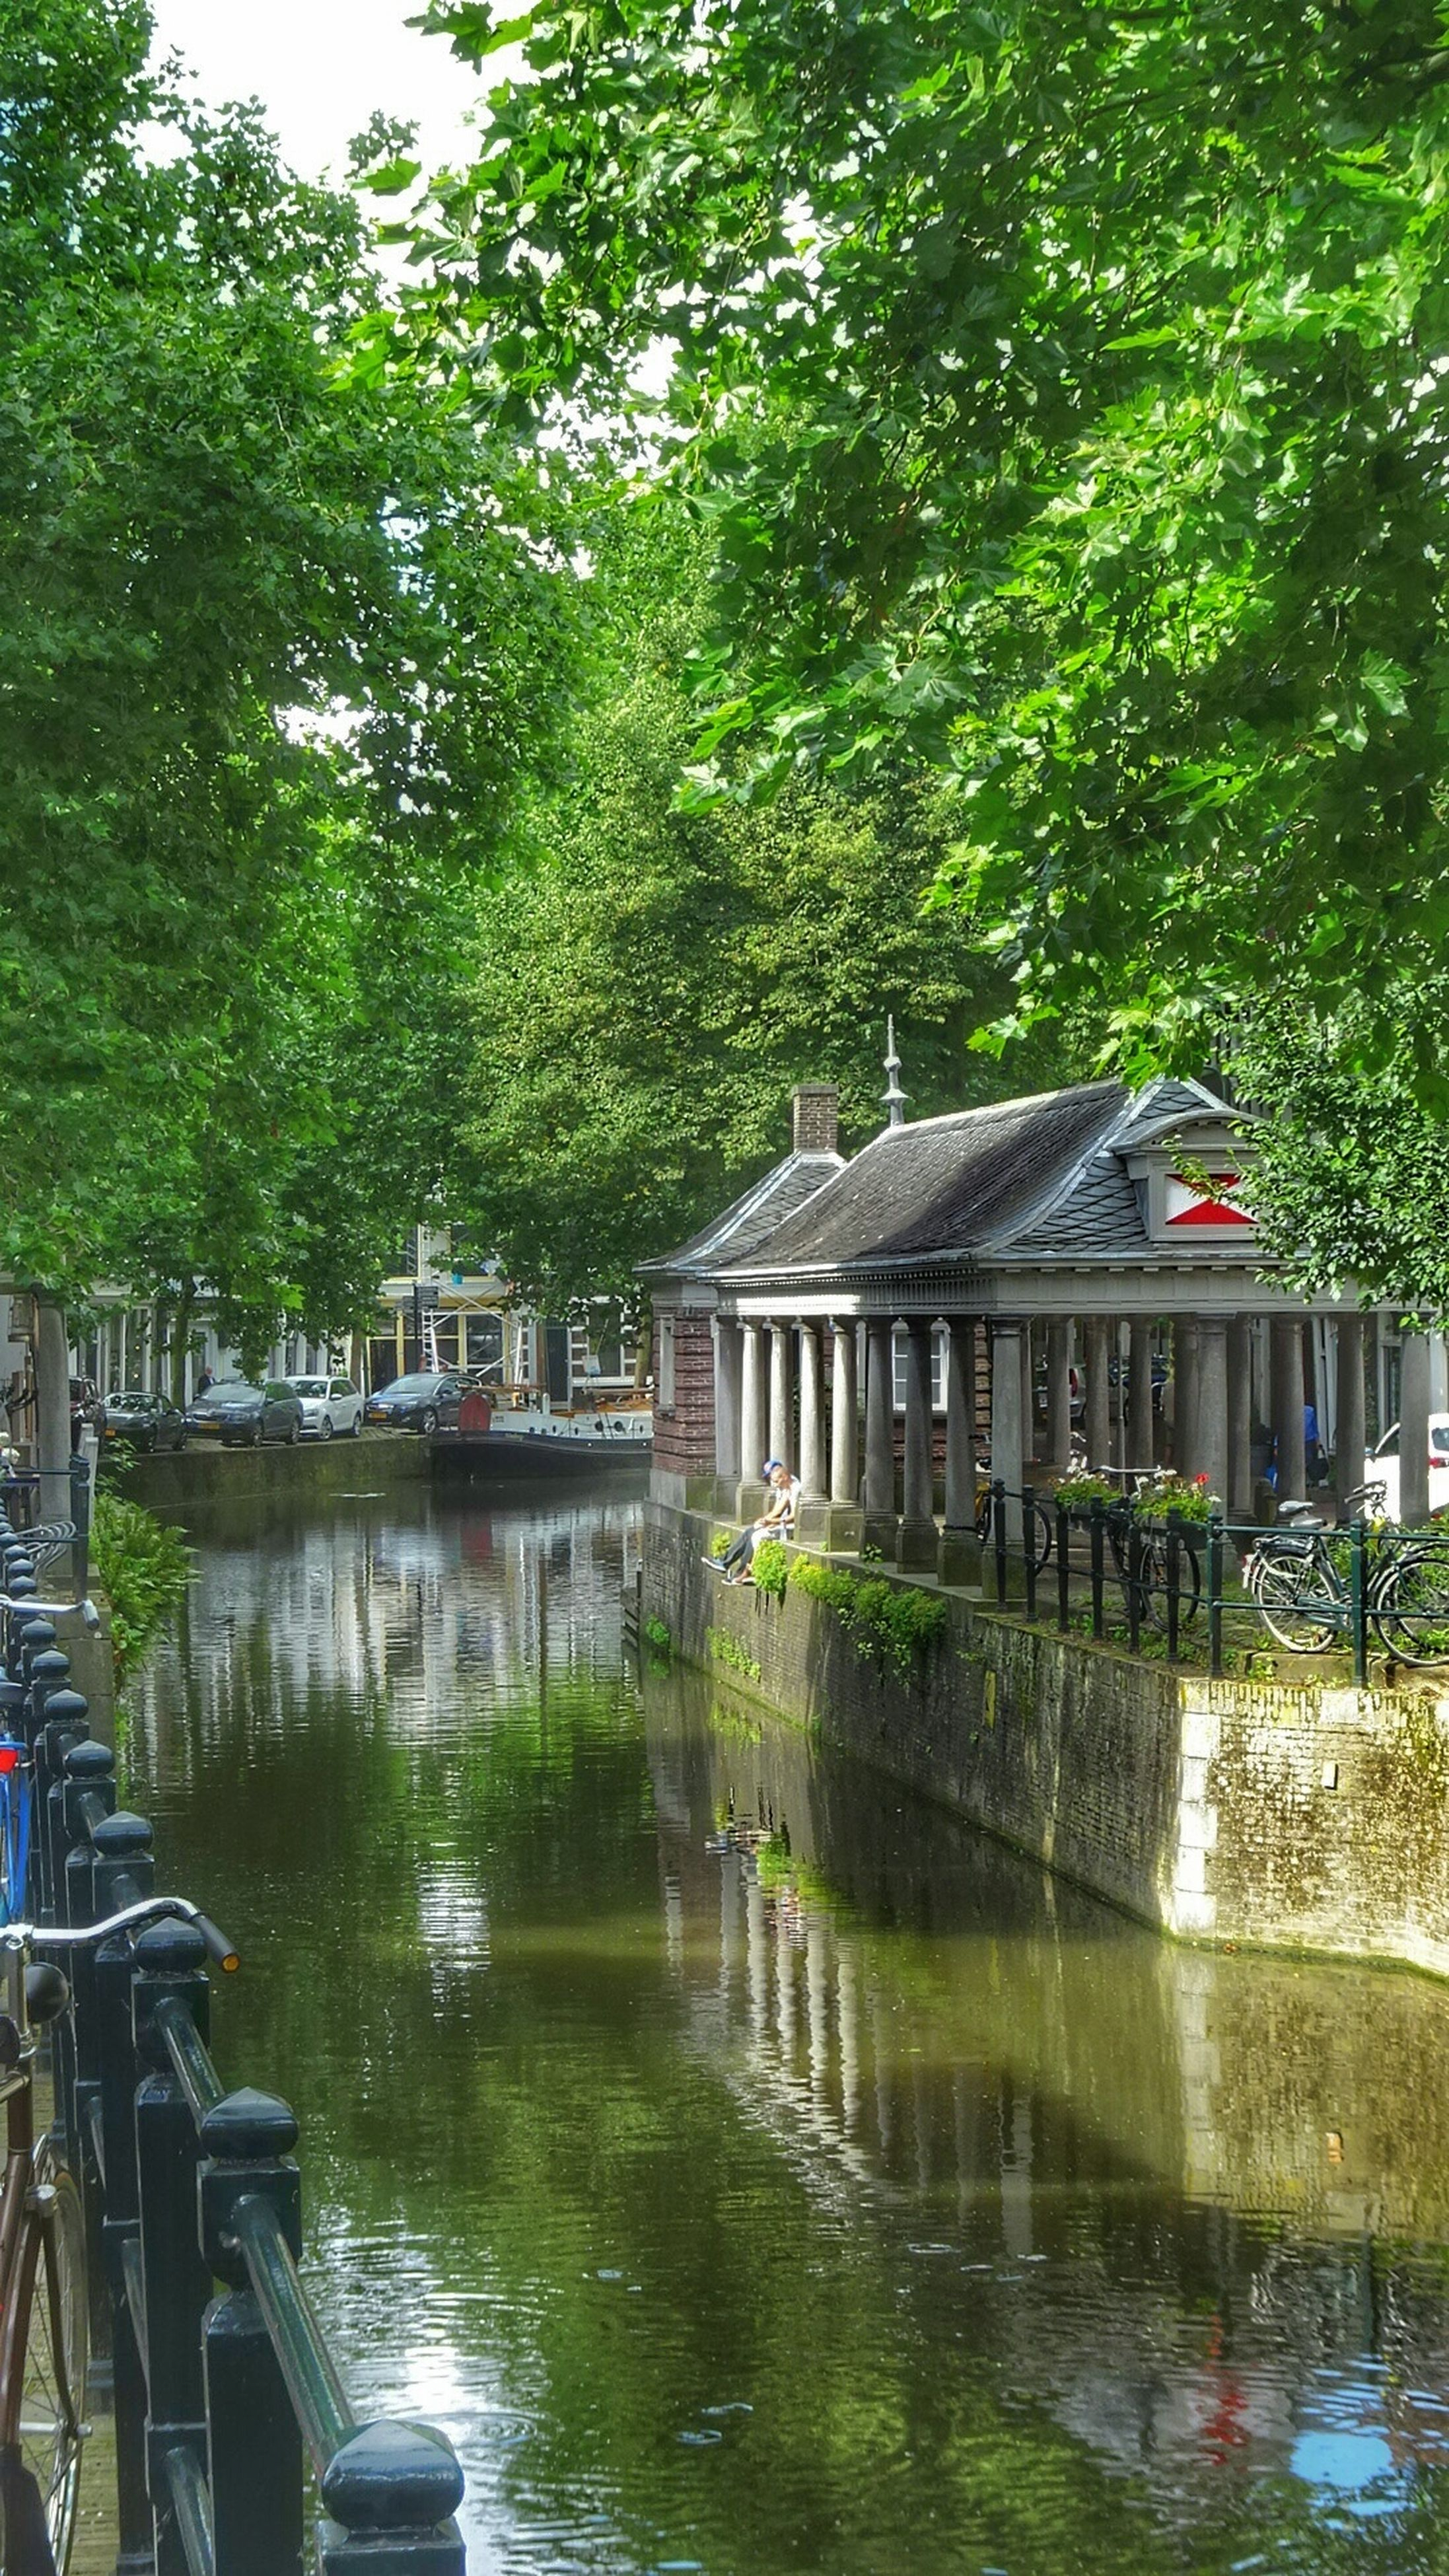 architecture, built structure, tree, building exterior, water, house, residential structure, residential building, river, reflection, waterfront, canal, growth, green color, day, tranquility, tranquil scene, nature, scenics, no people, residential district, lush foliage, beauty in nature